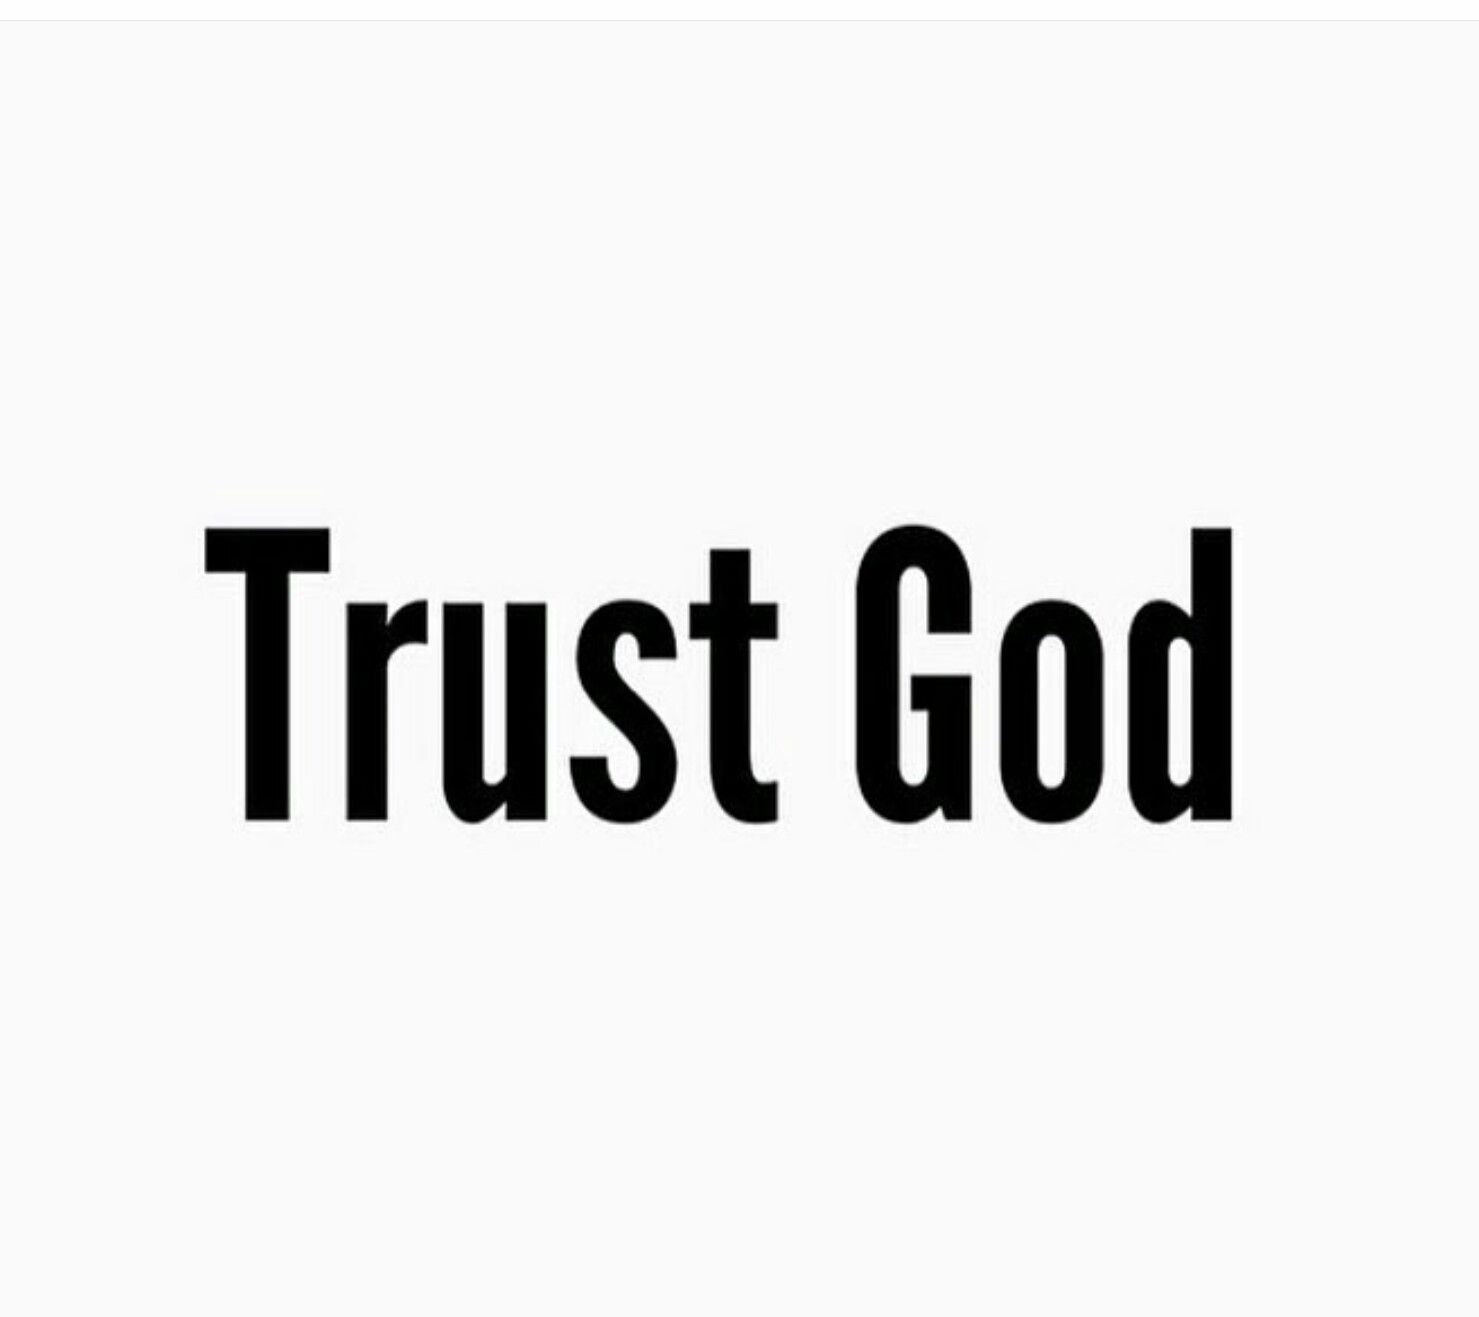 God has saved me when My enemies have set a trap for me, And